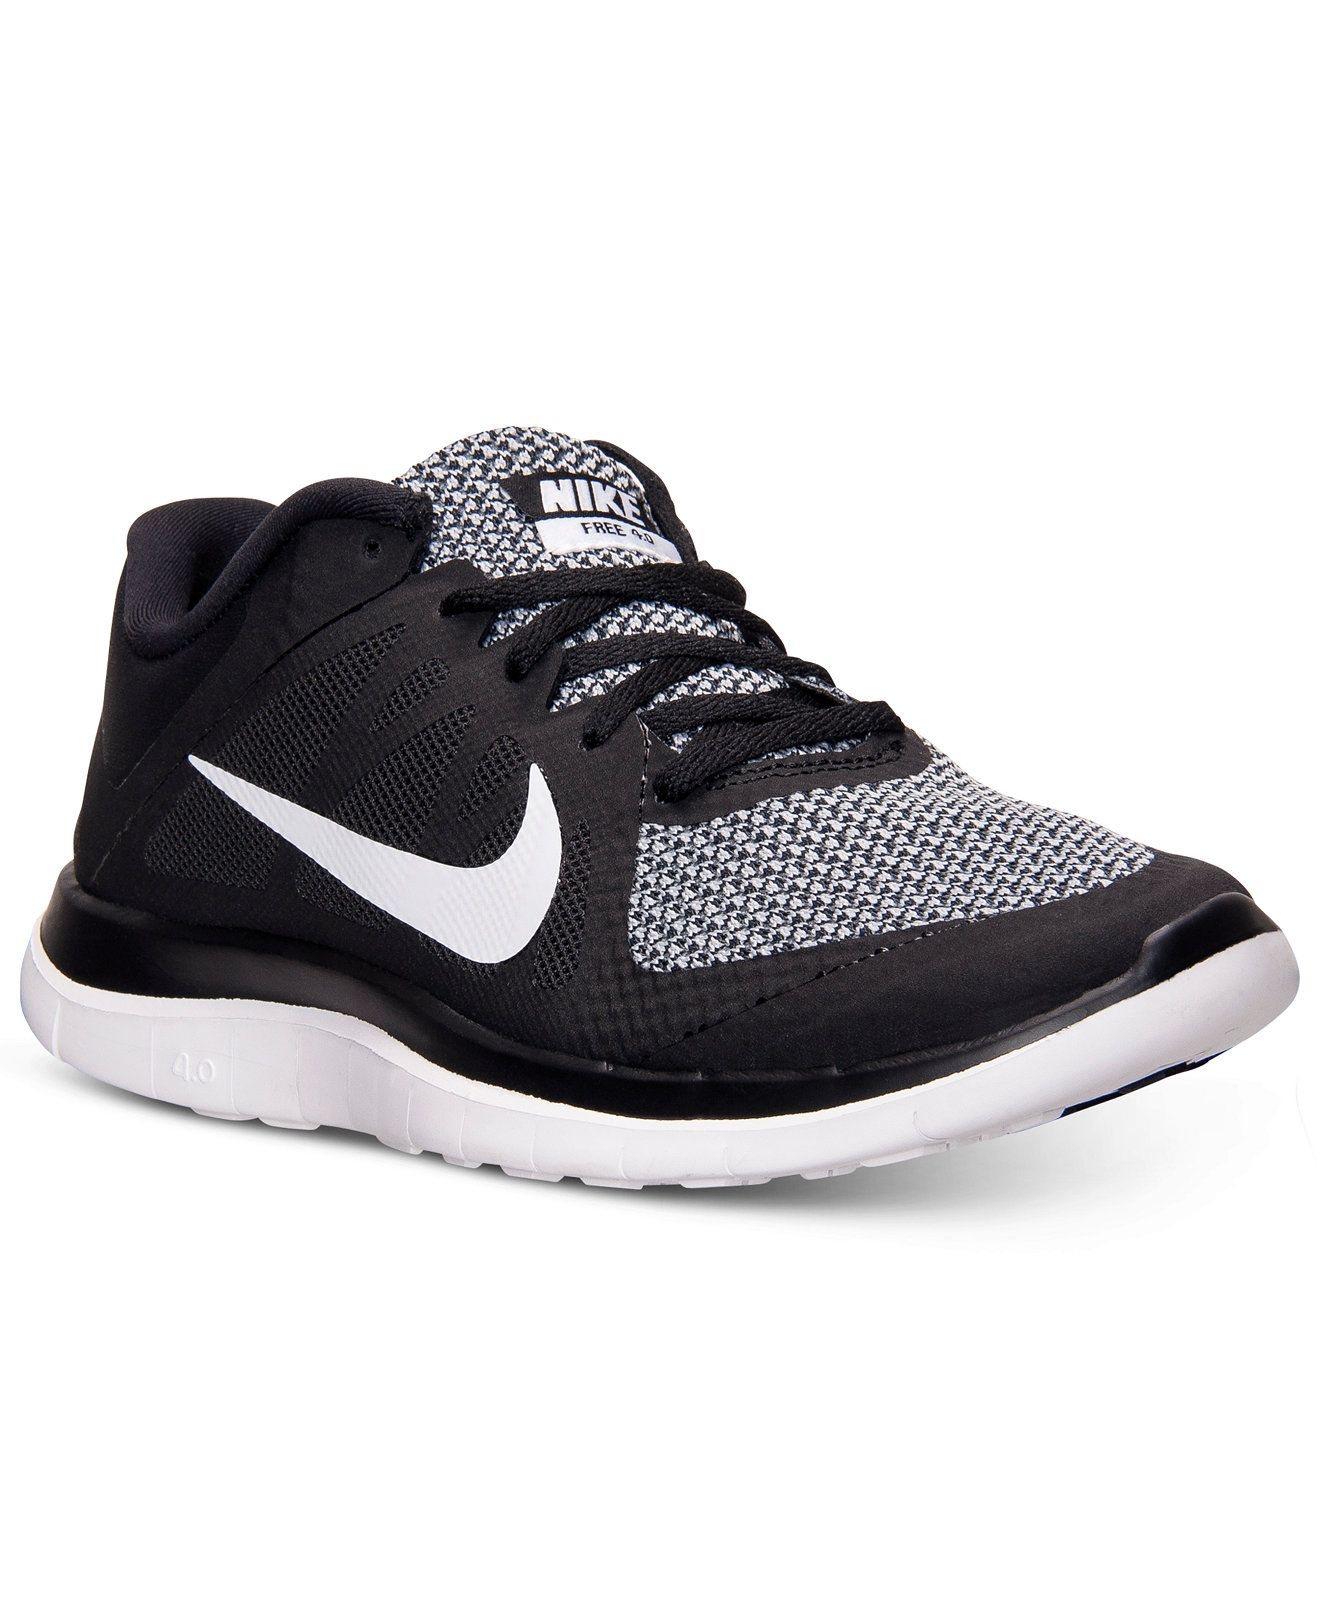 9d5c148b79c Nike Women s Free 4.0 V4 Running Sneakers from Finish Line - Kids Finish  Line Athletic Shoes - Macy s